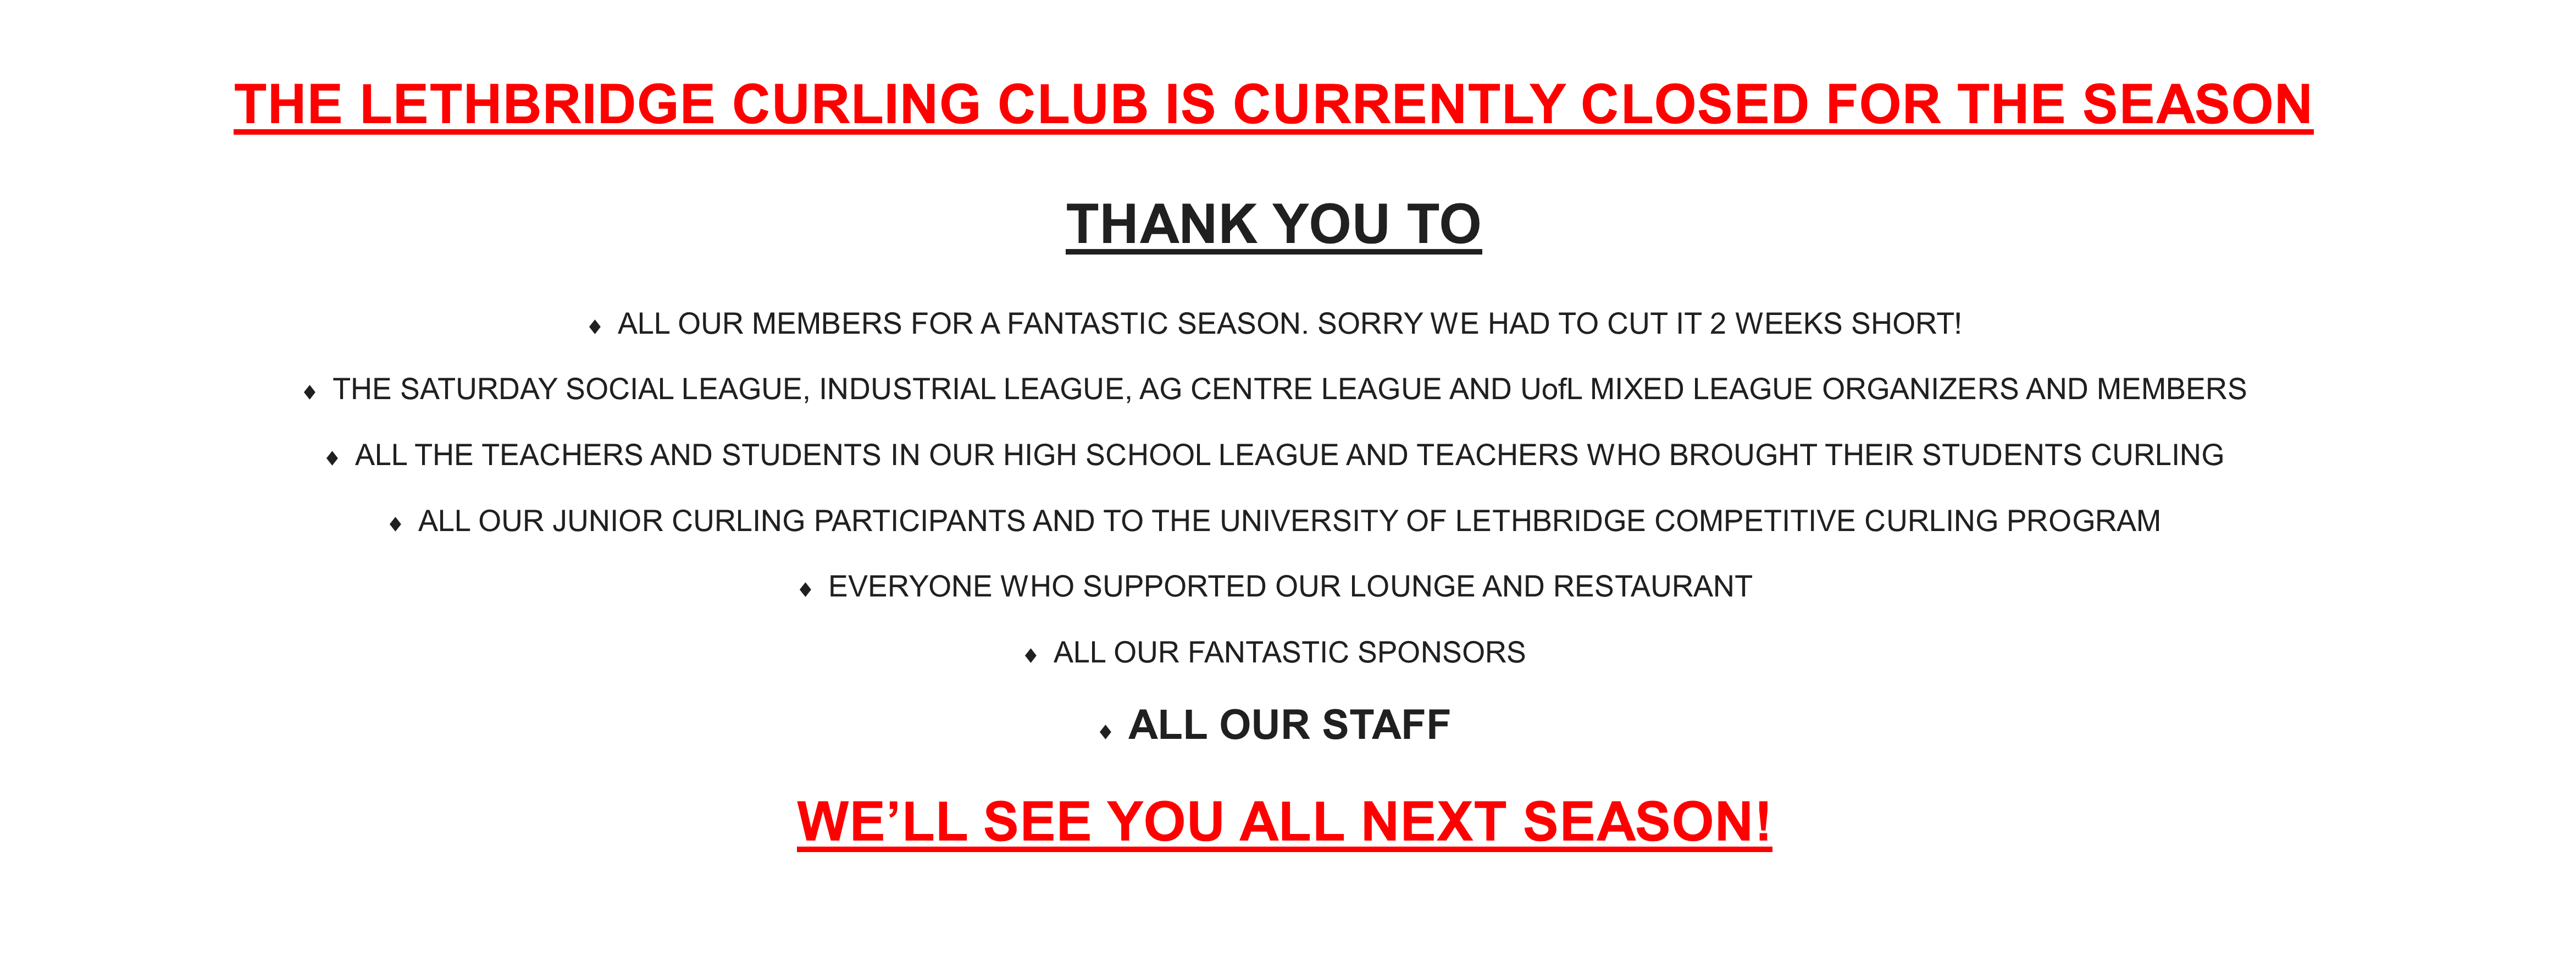 <div id=slideshow_title>Club Closed For Season</div> <br><div style='text-align: left; font-size: 18px;'>FOR MORE INFO EMAIL: kirk@lethbridgecurlingclub.com</div>